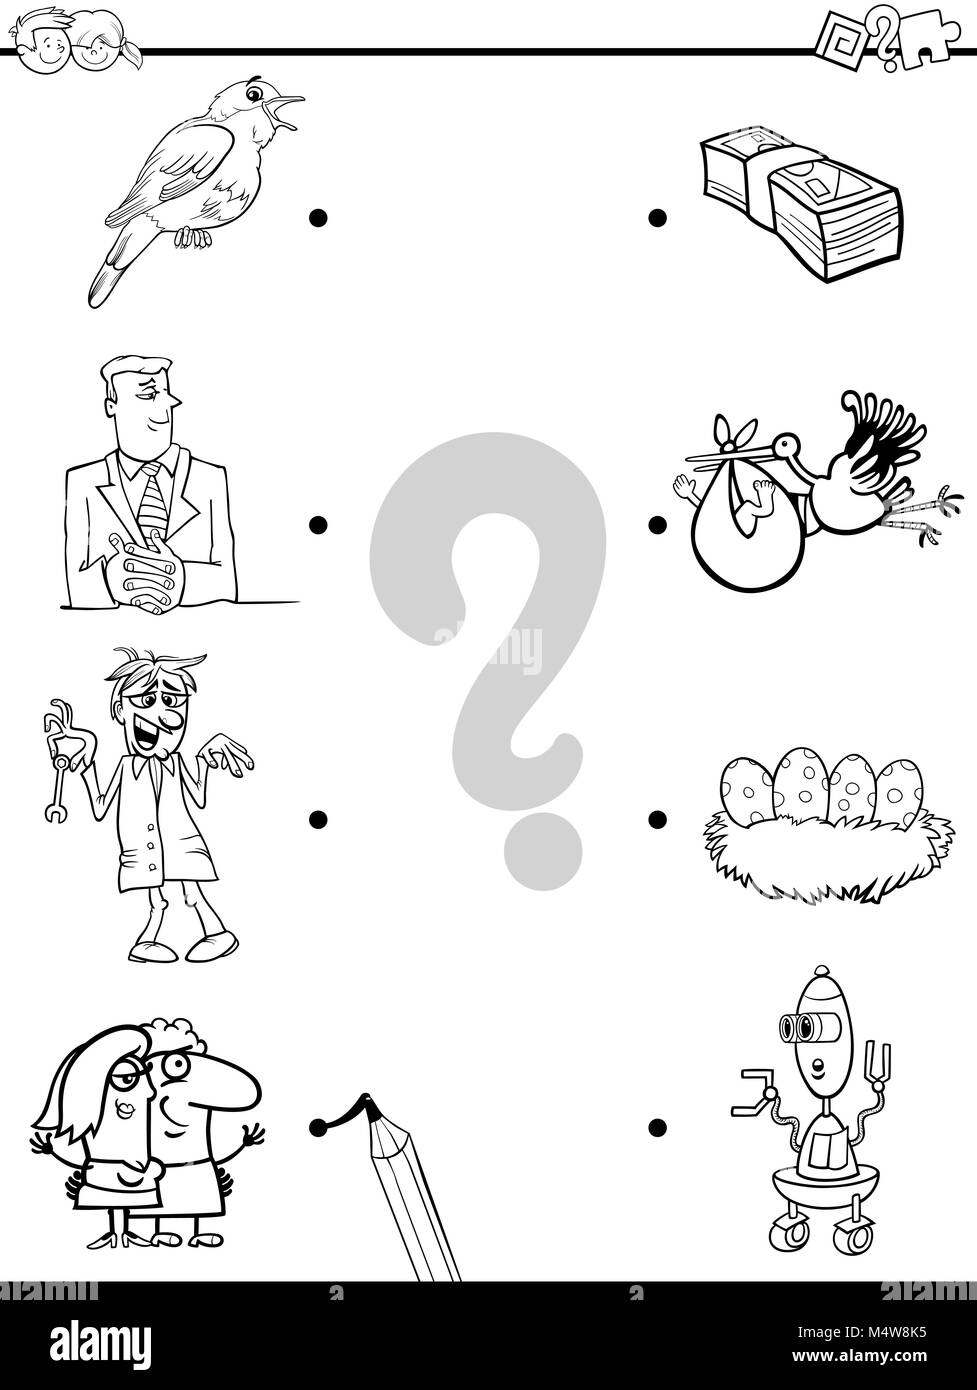 match objects educational coloring book - Stock Image